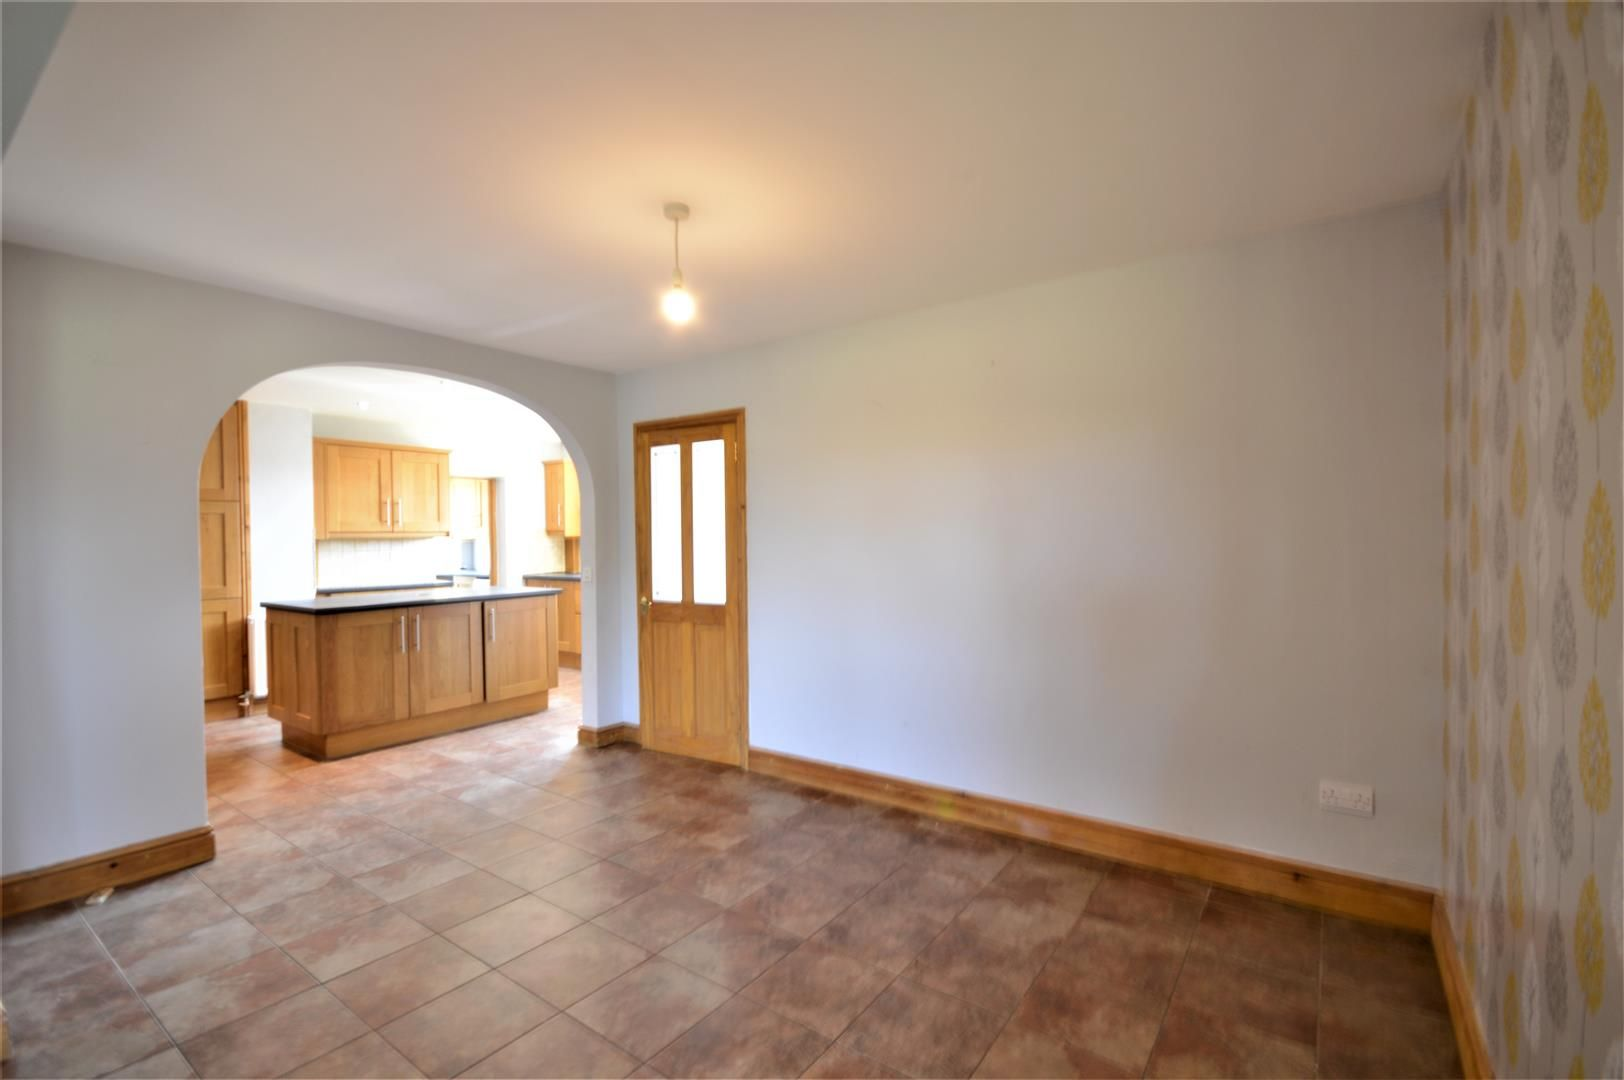 5 bed detached for sale in Sutton St. Nicholas  - Property Image 11